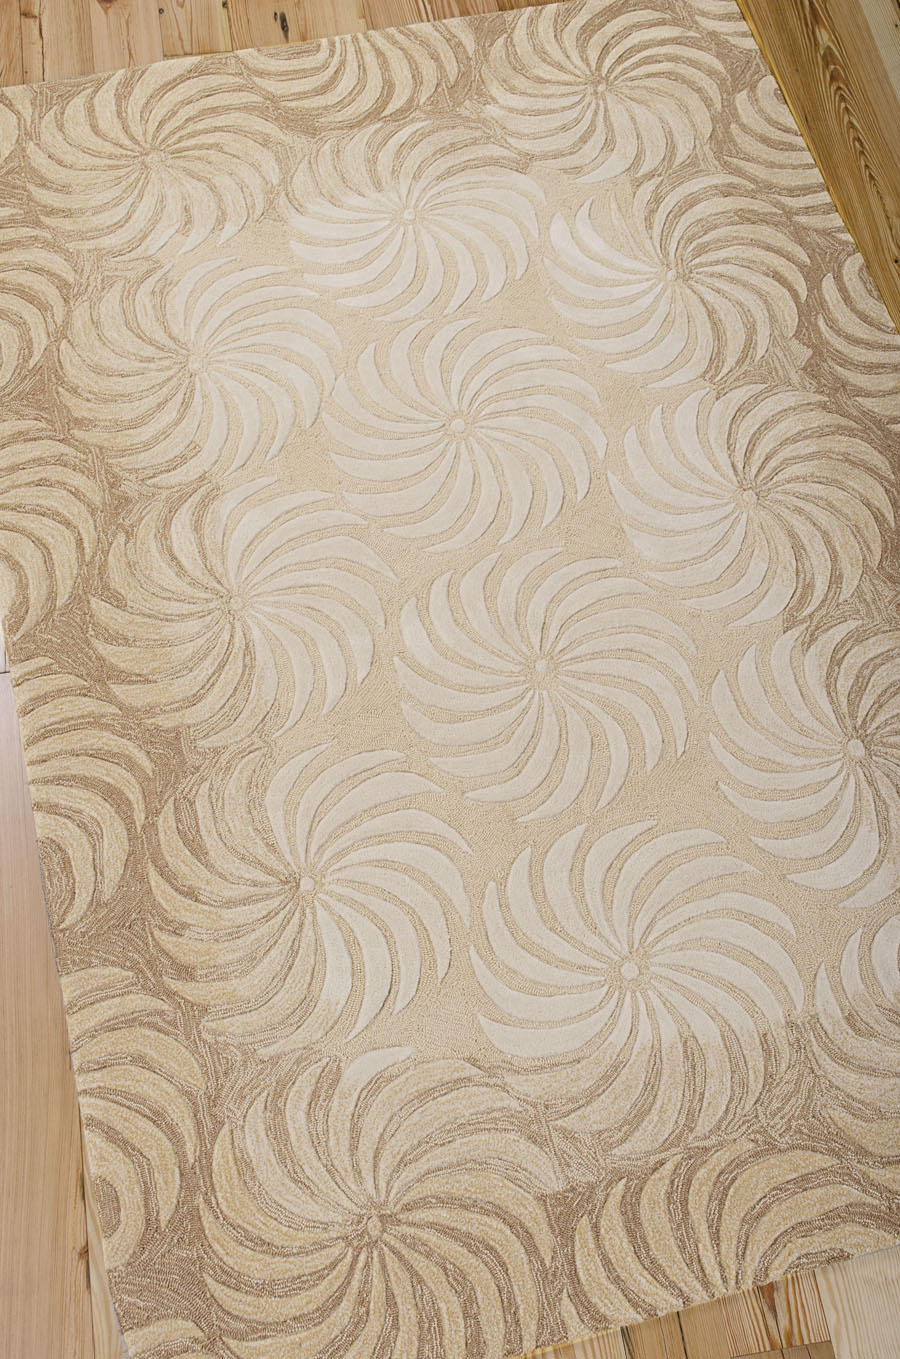 Contour CON07 Taupe Rug by Nourison